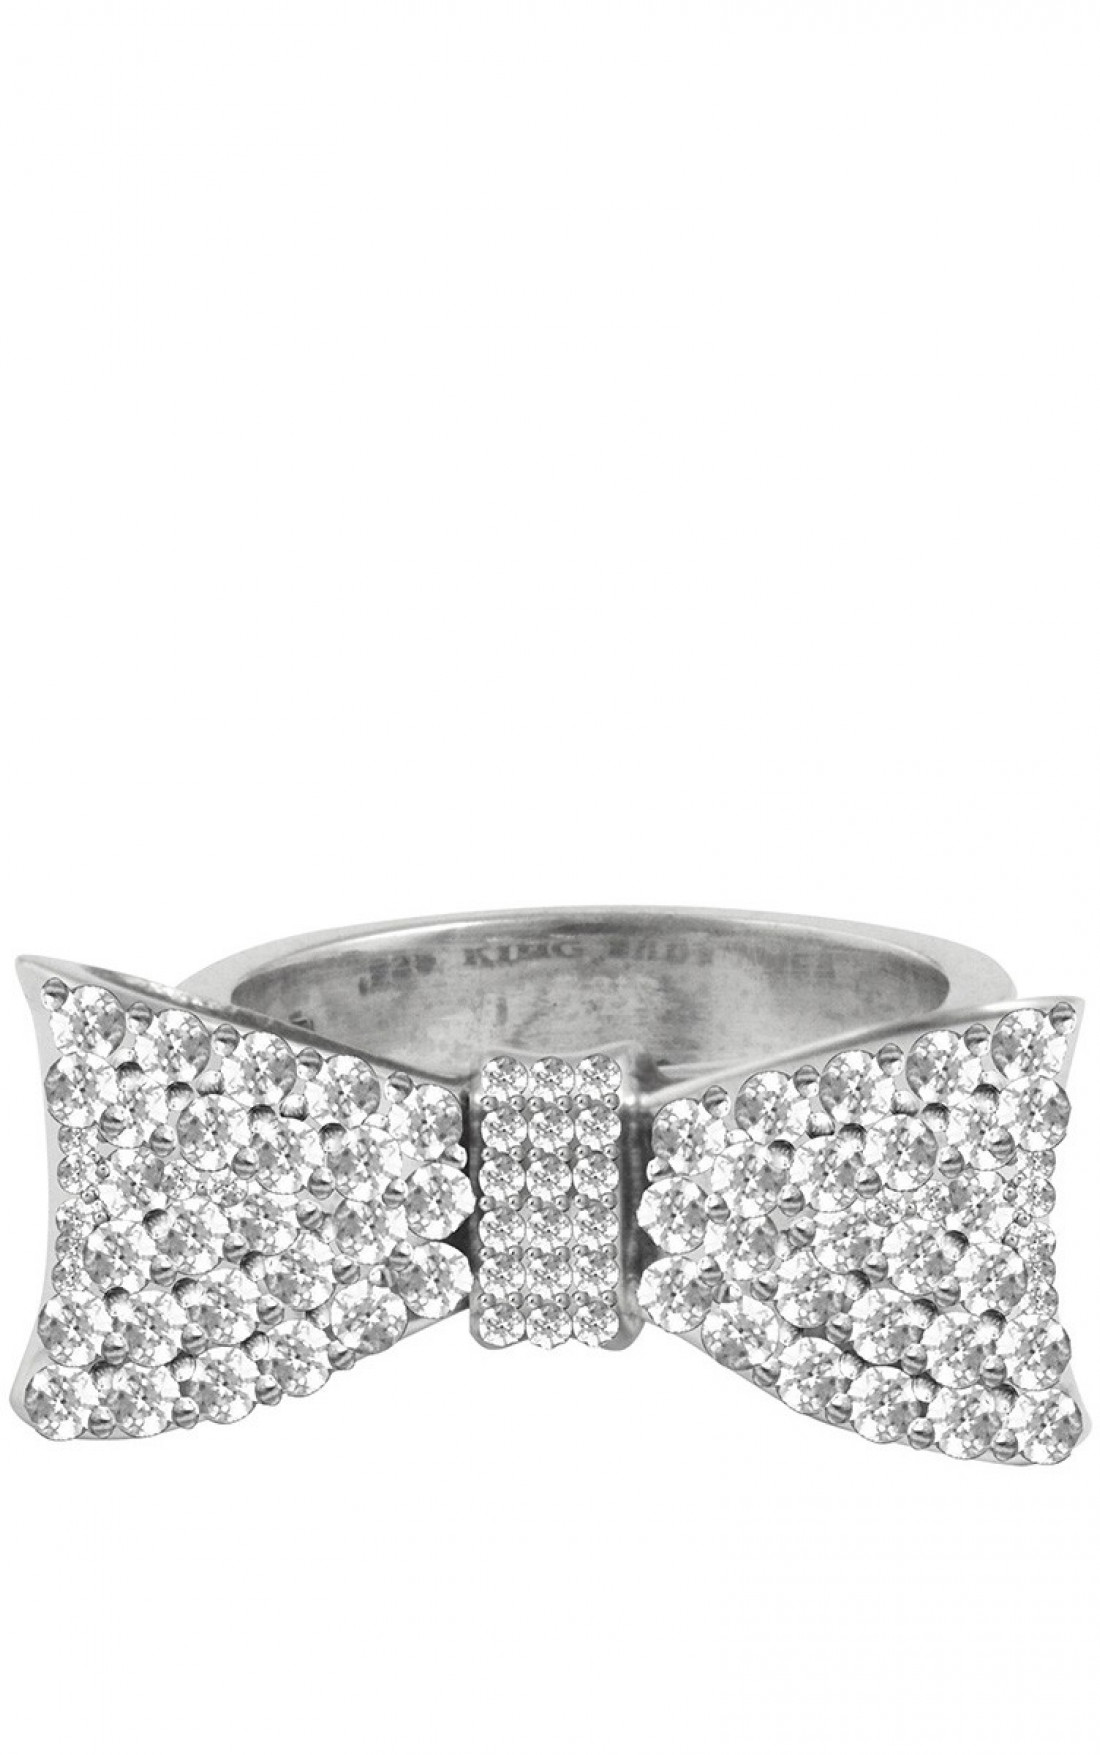 Queen Baby - Baby Bow Ring Pave Cz (Q20-5895-6)